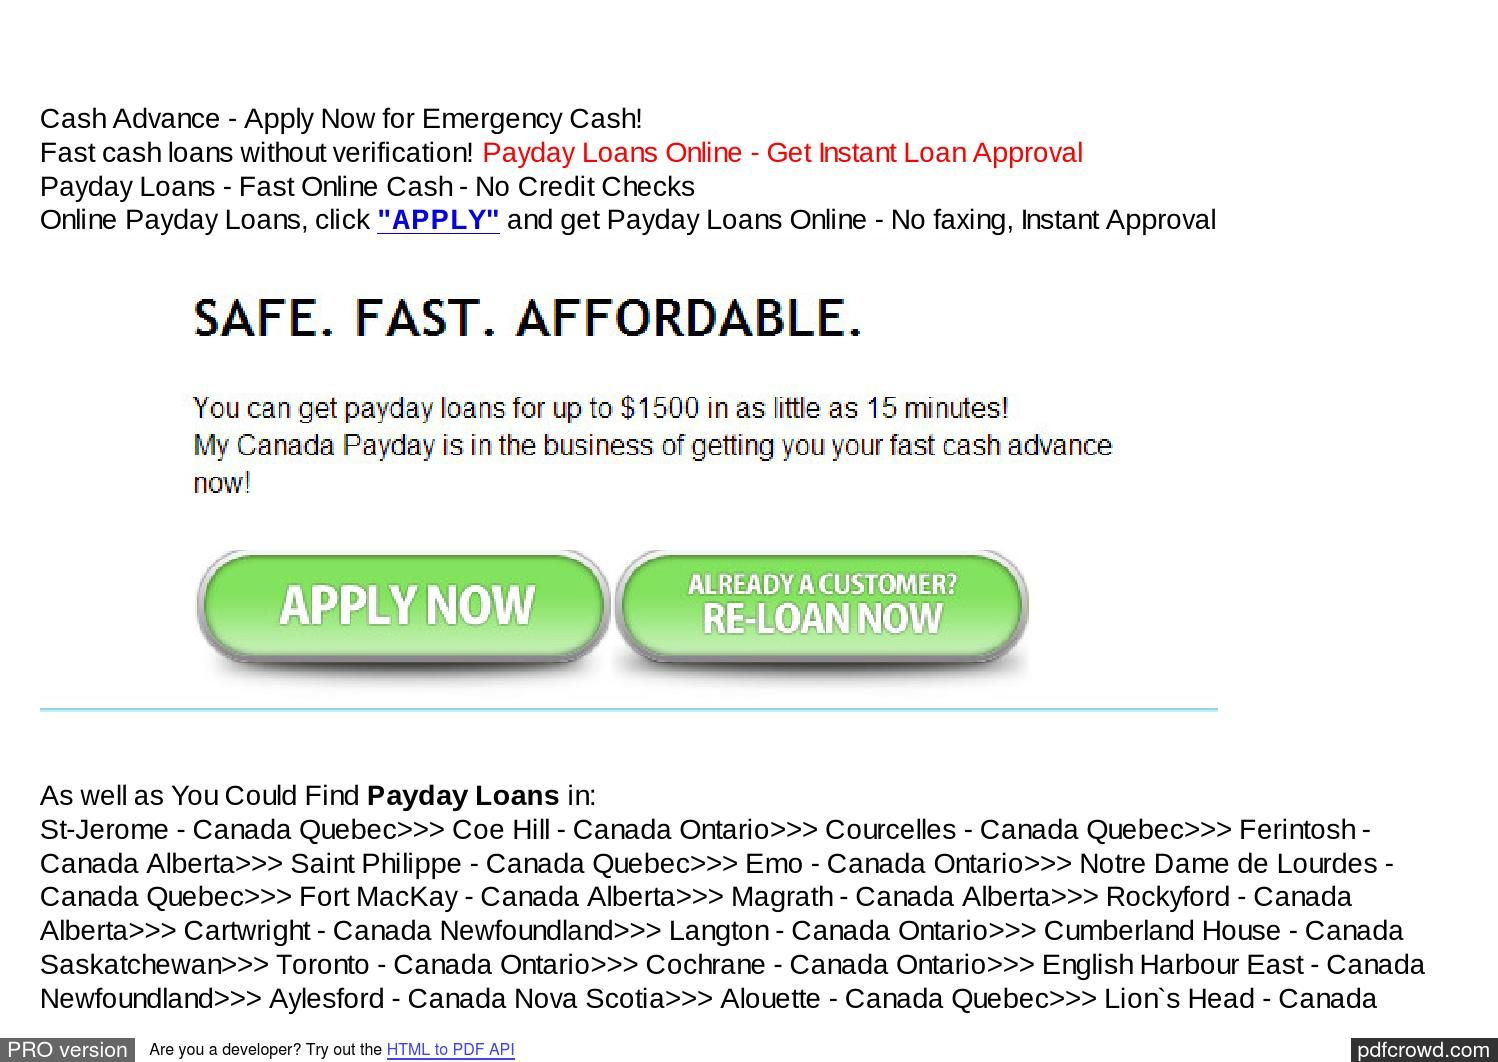 Paydayrooster Online Payday Loans Ontario Onlinepaydayloansontario Onlinepaydayloanscanada Canadapaydayloans Payd Payday Loans Payday Payday Loans Online